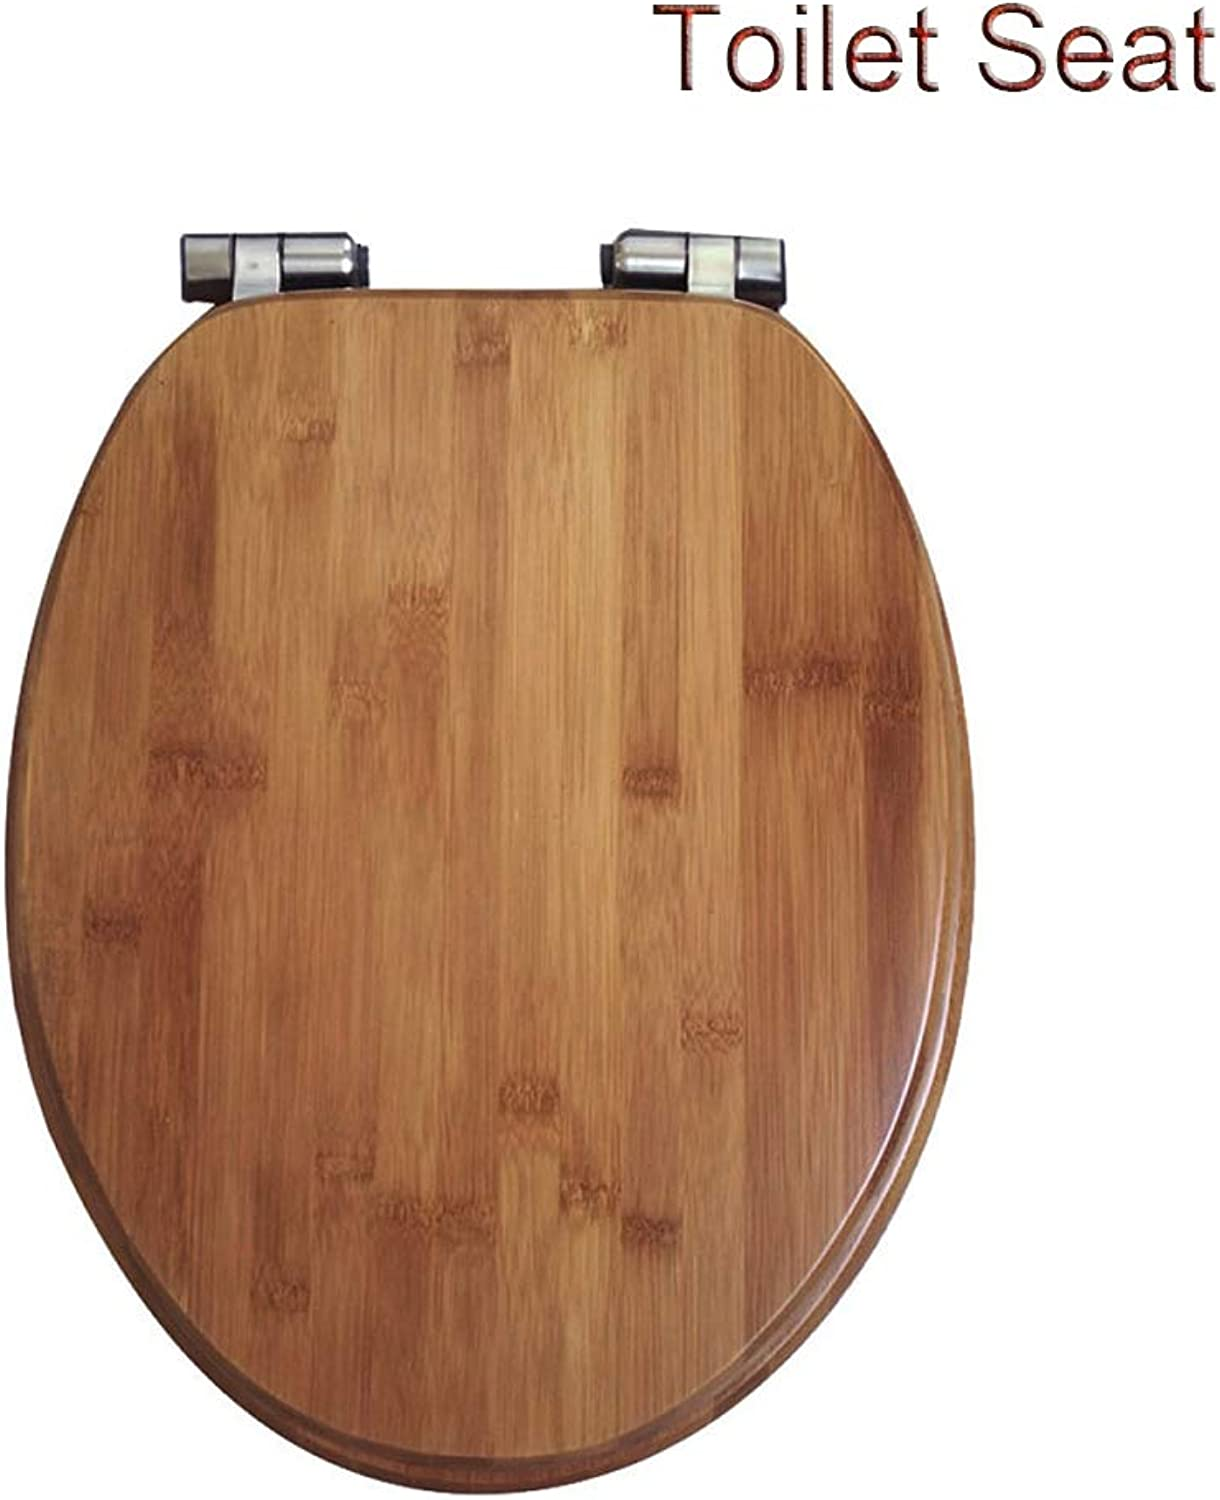 Toilet Seats V U O Shape Wooden Toilet Lid Soft Close Hinge Toilet Seat Cover Stable Hinges Easy to Mount for Family Bathroom Mounting Size  4048  3338cm